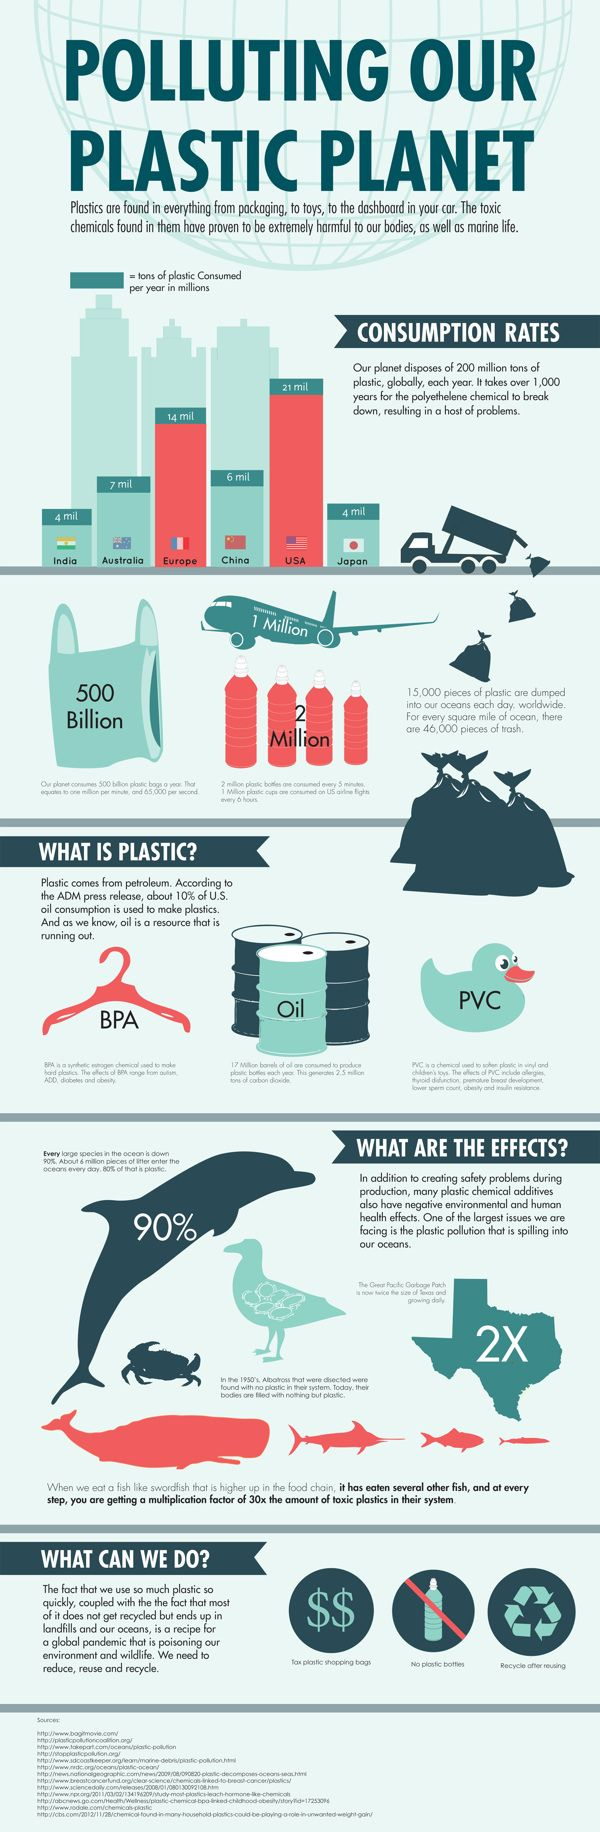 Polluting Our Plastic Planet by Chelsea Petosa, via Behance